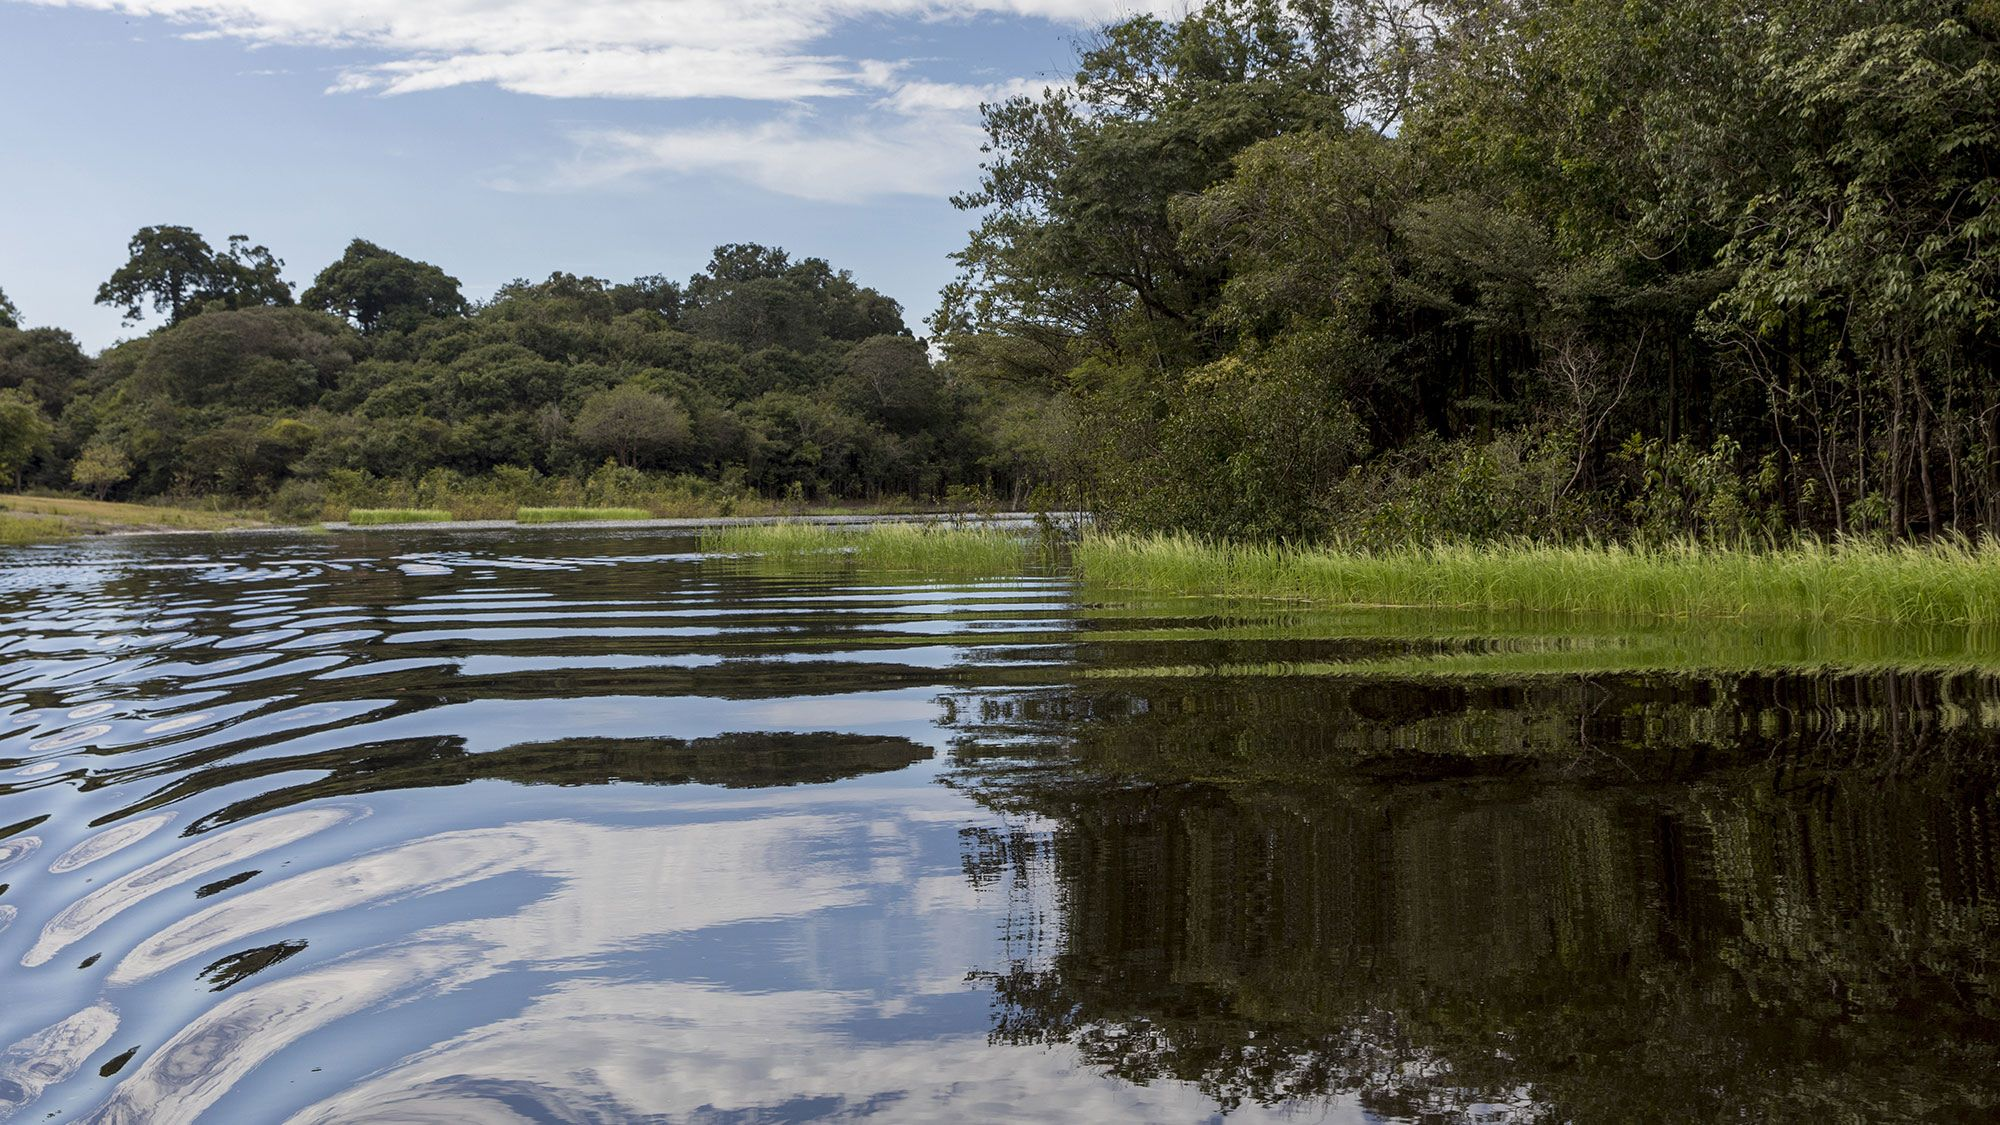 Water resources be conserved